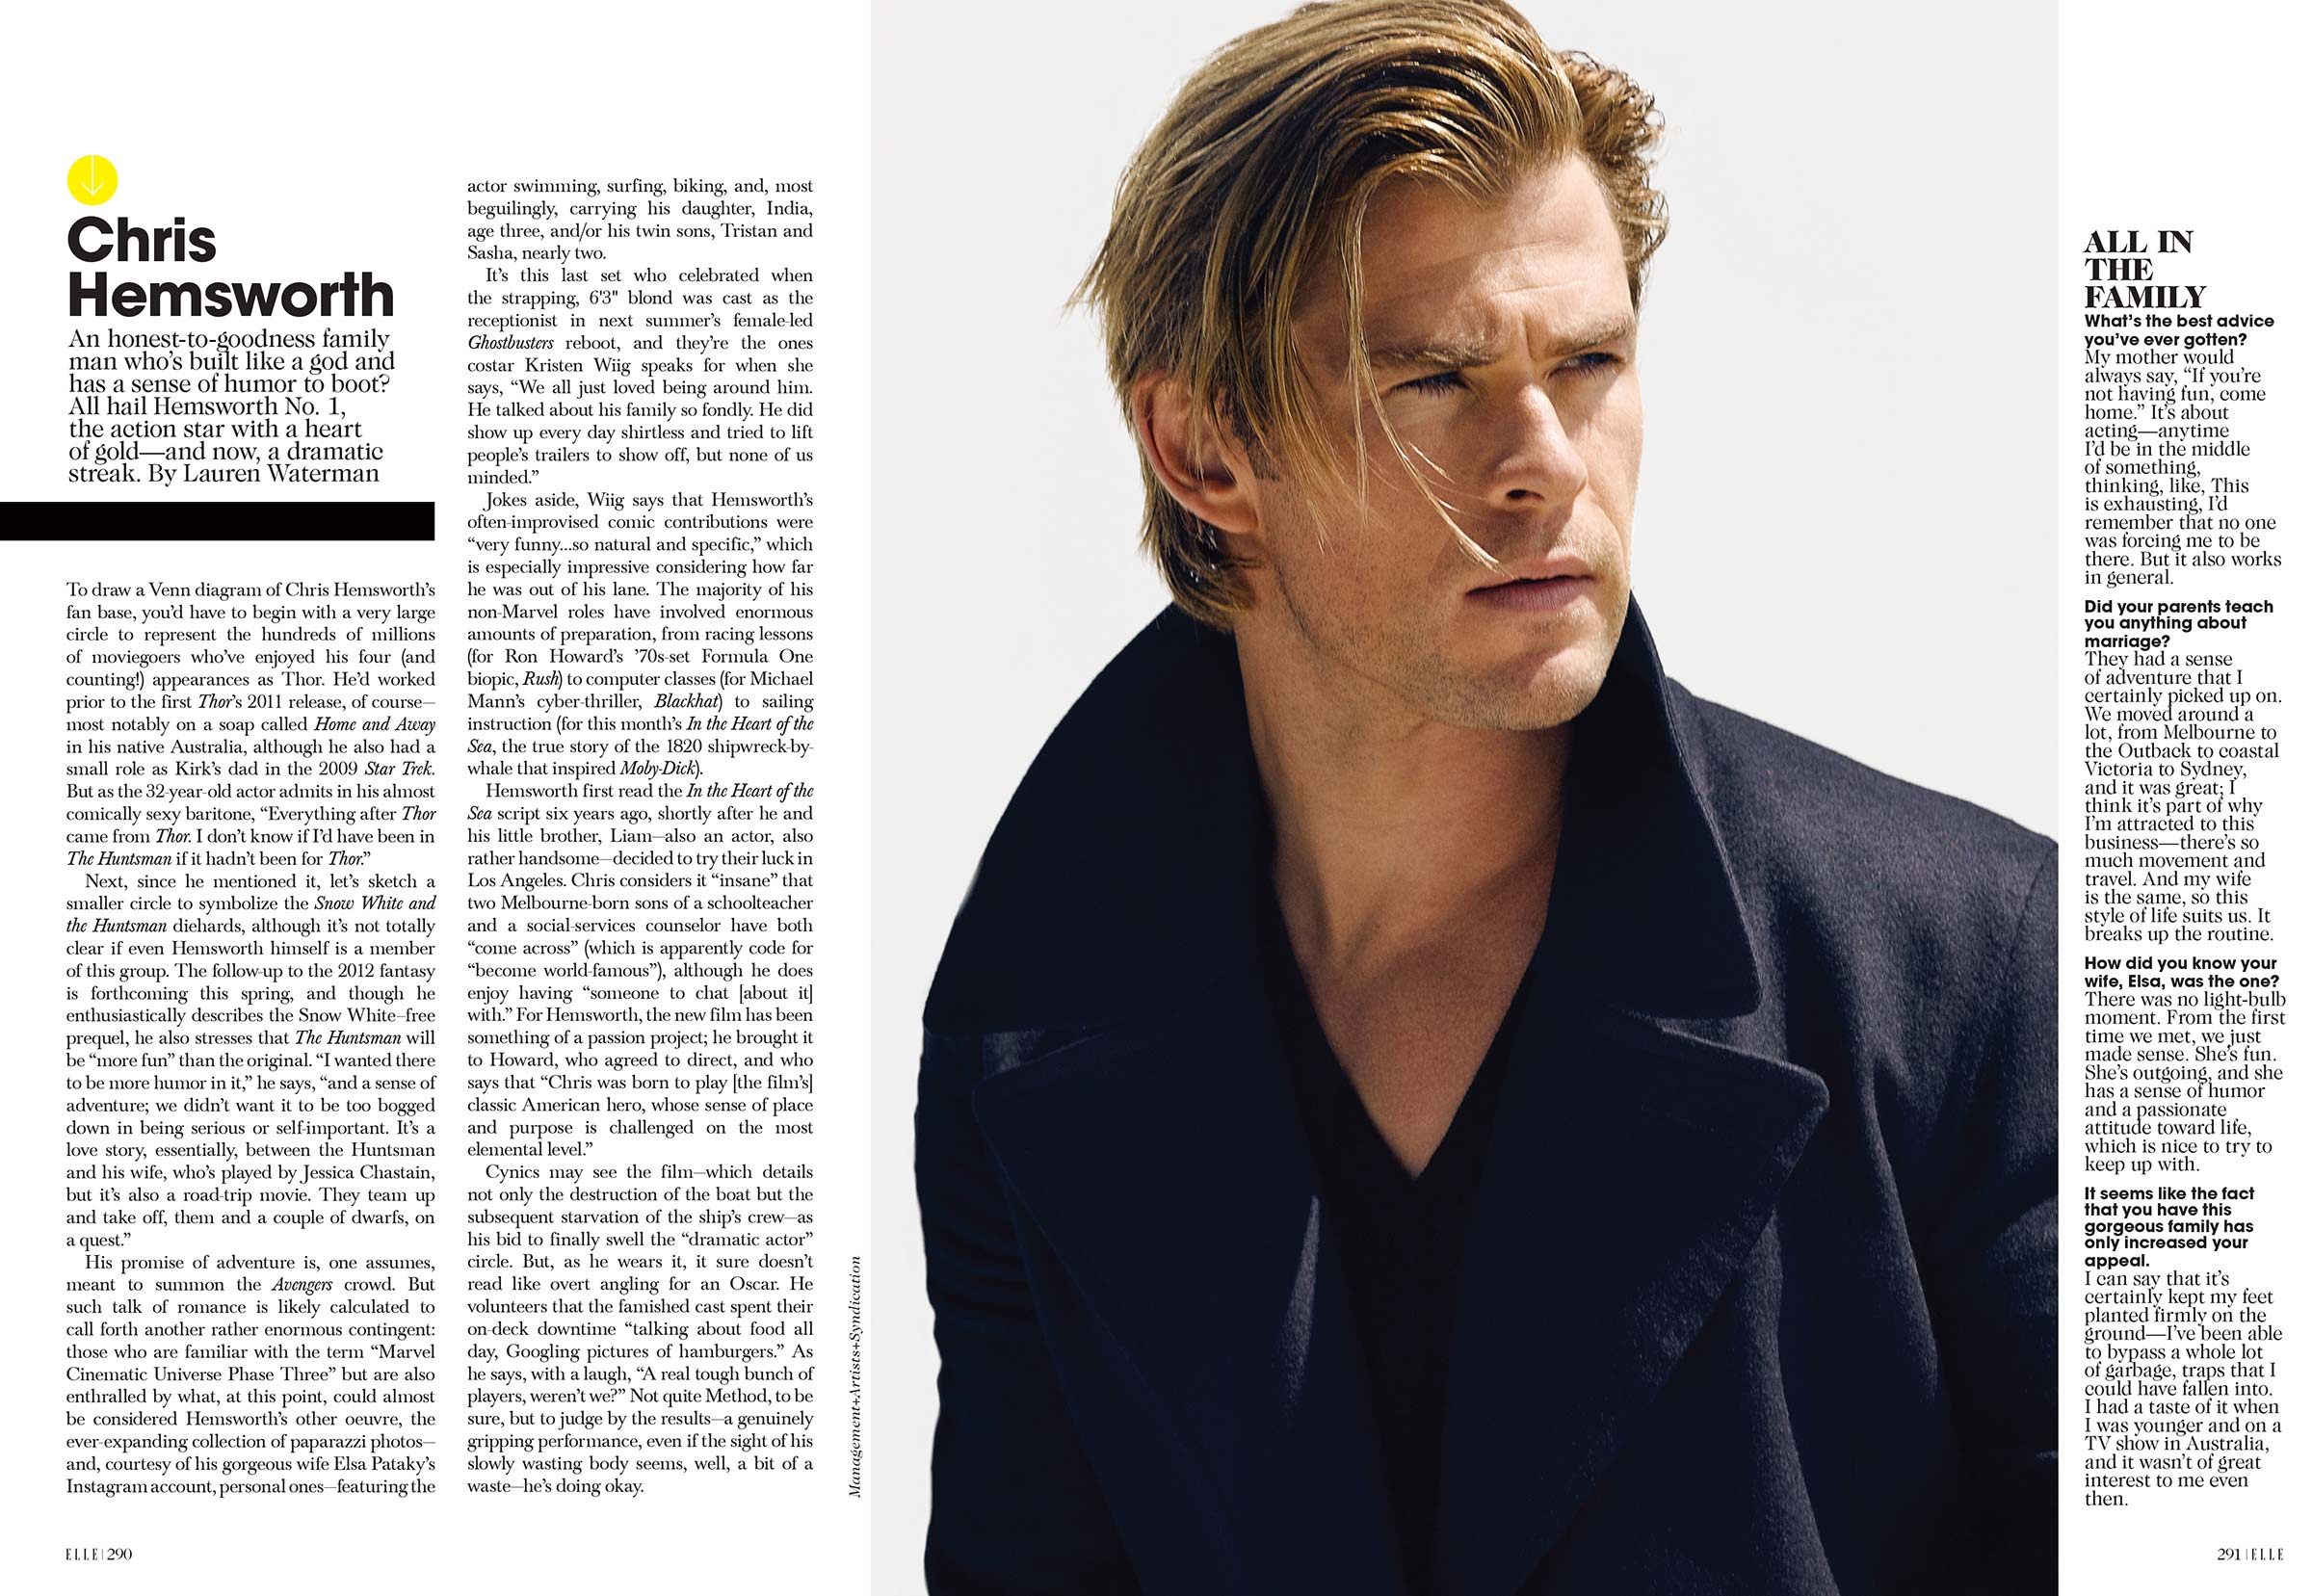 Chris Hemsworth in Elle